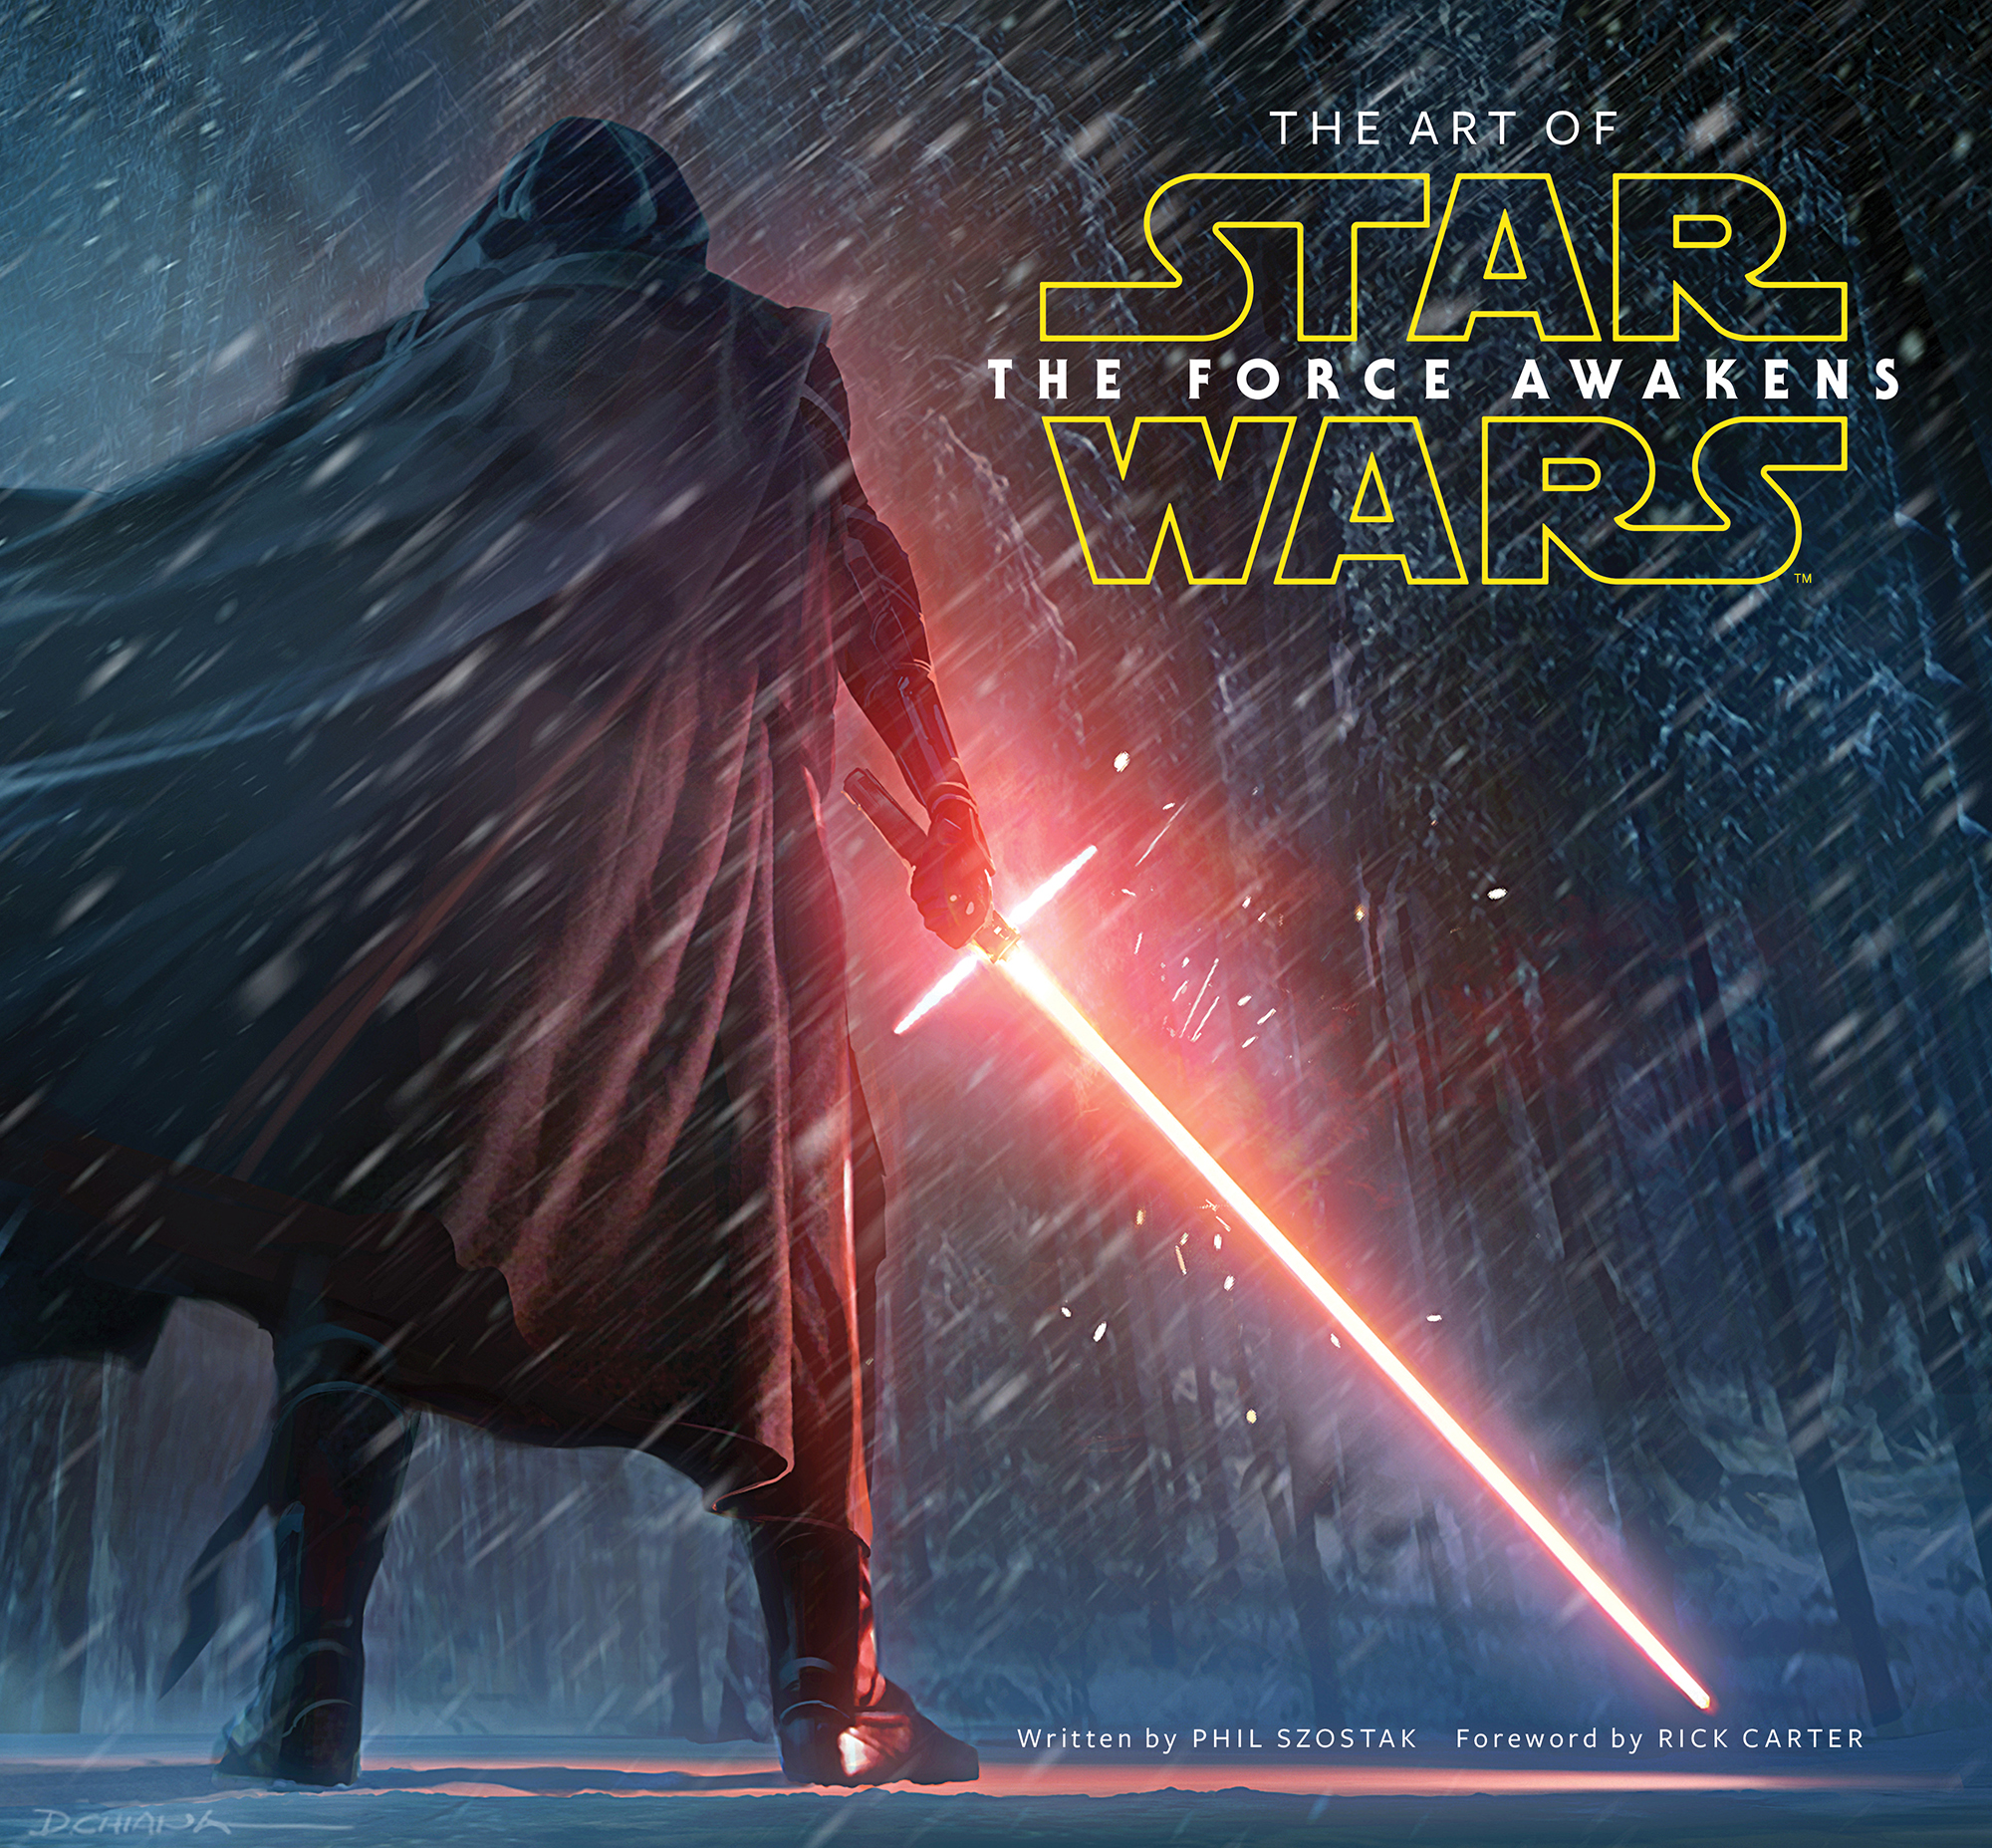 The Art of Star Wars: The Force Awakens ...